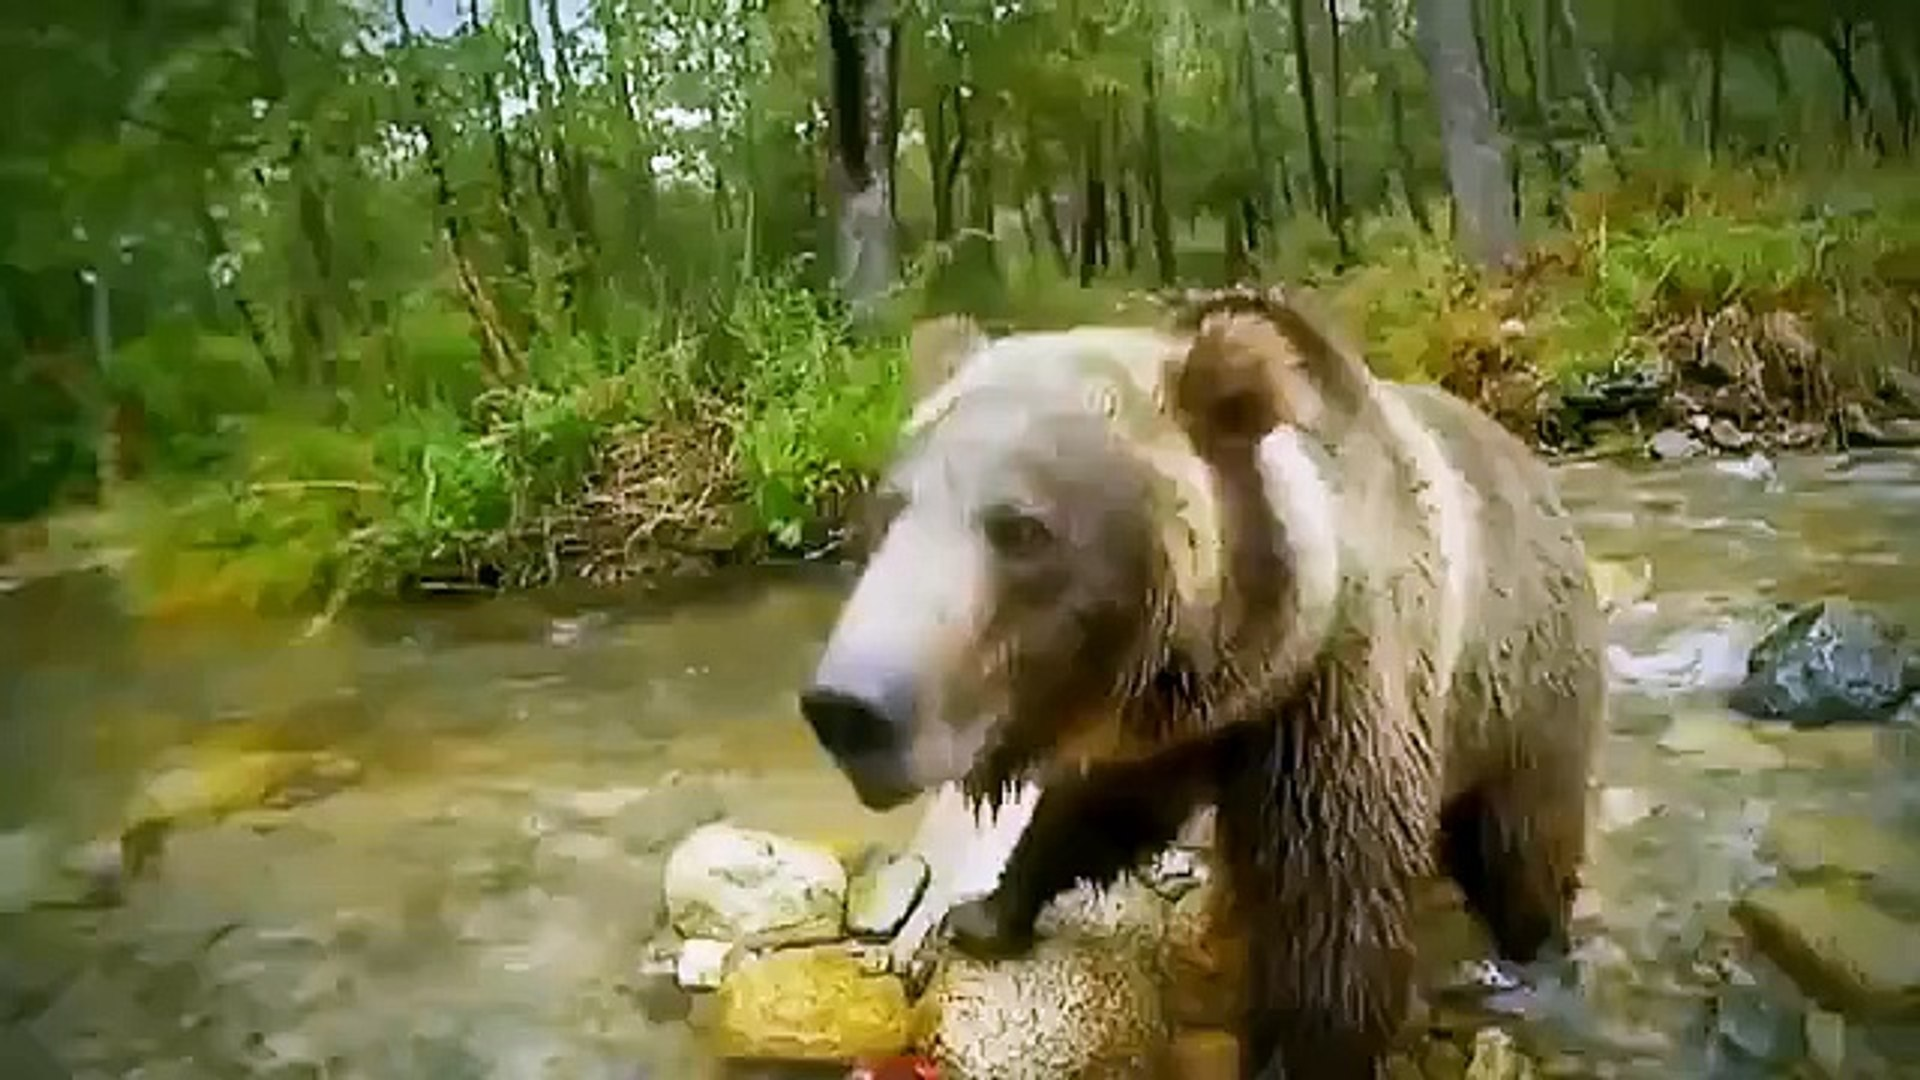 National Geographic animals - Wolves vs Grizzly Bears - Wild animals hunting documentary